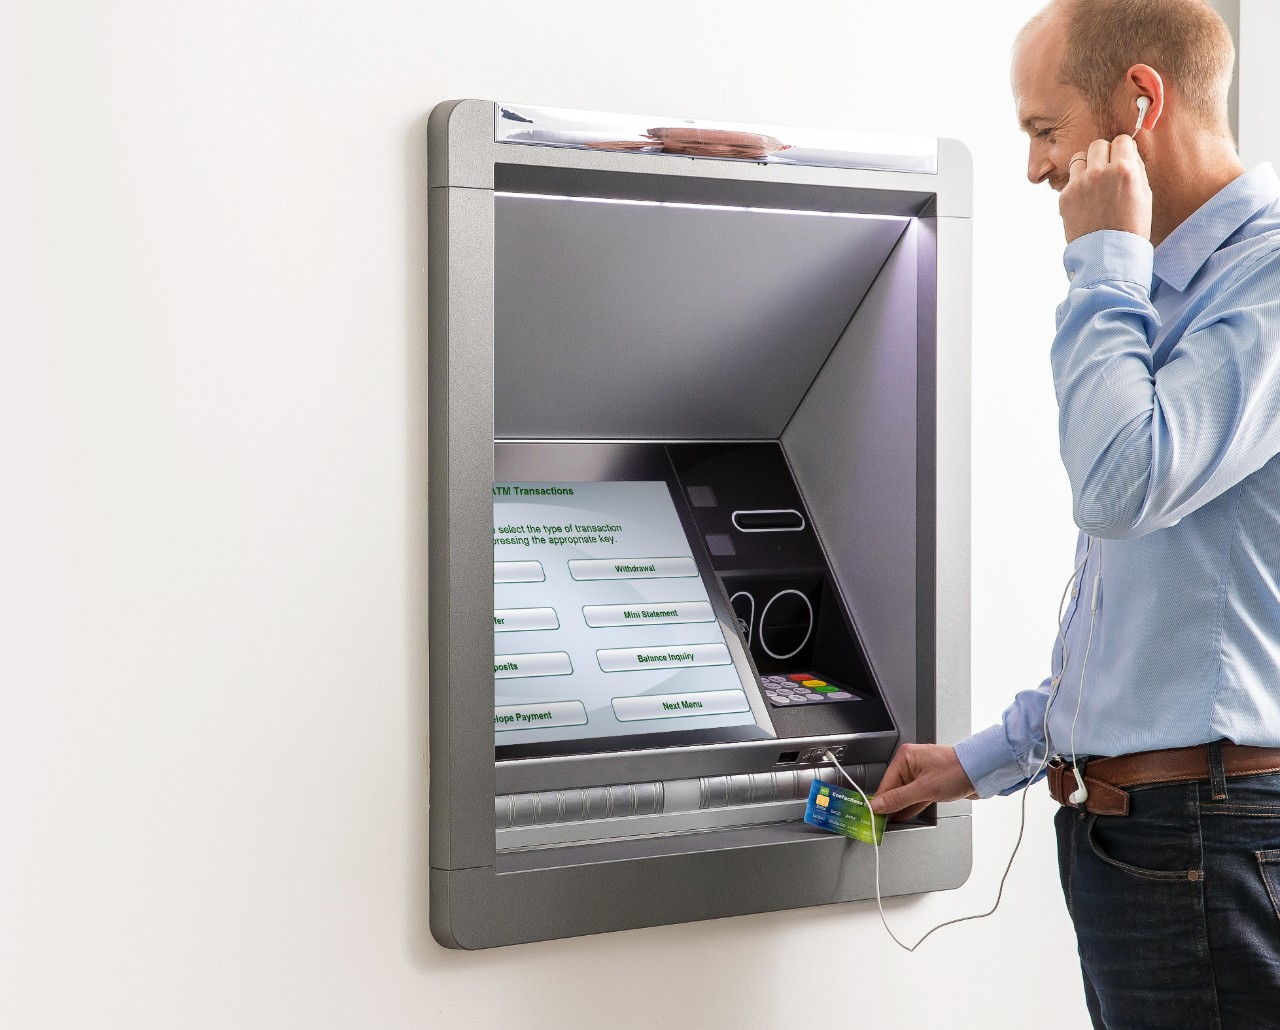 Screen showing options for ATM Transactions on NCR software on walk up ATM while a man uses his headphones and credit card to complete an action